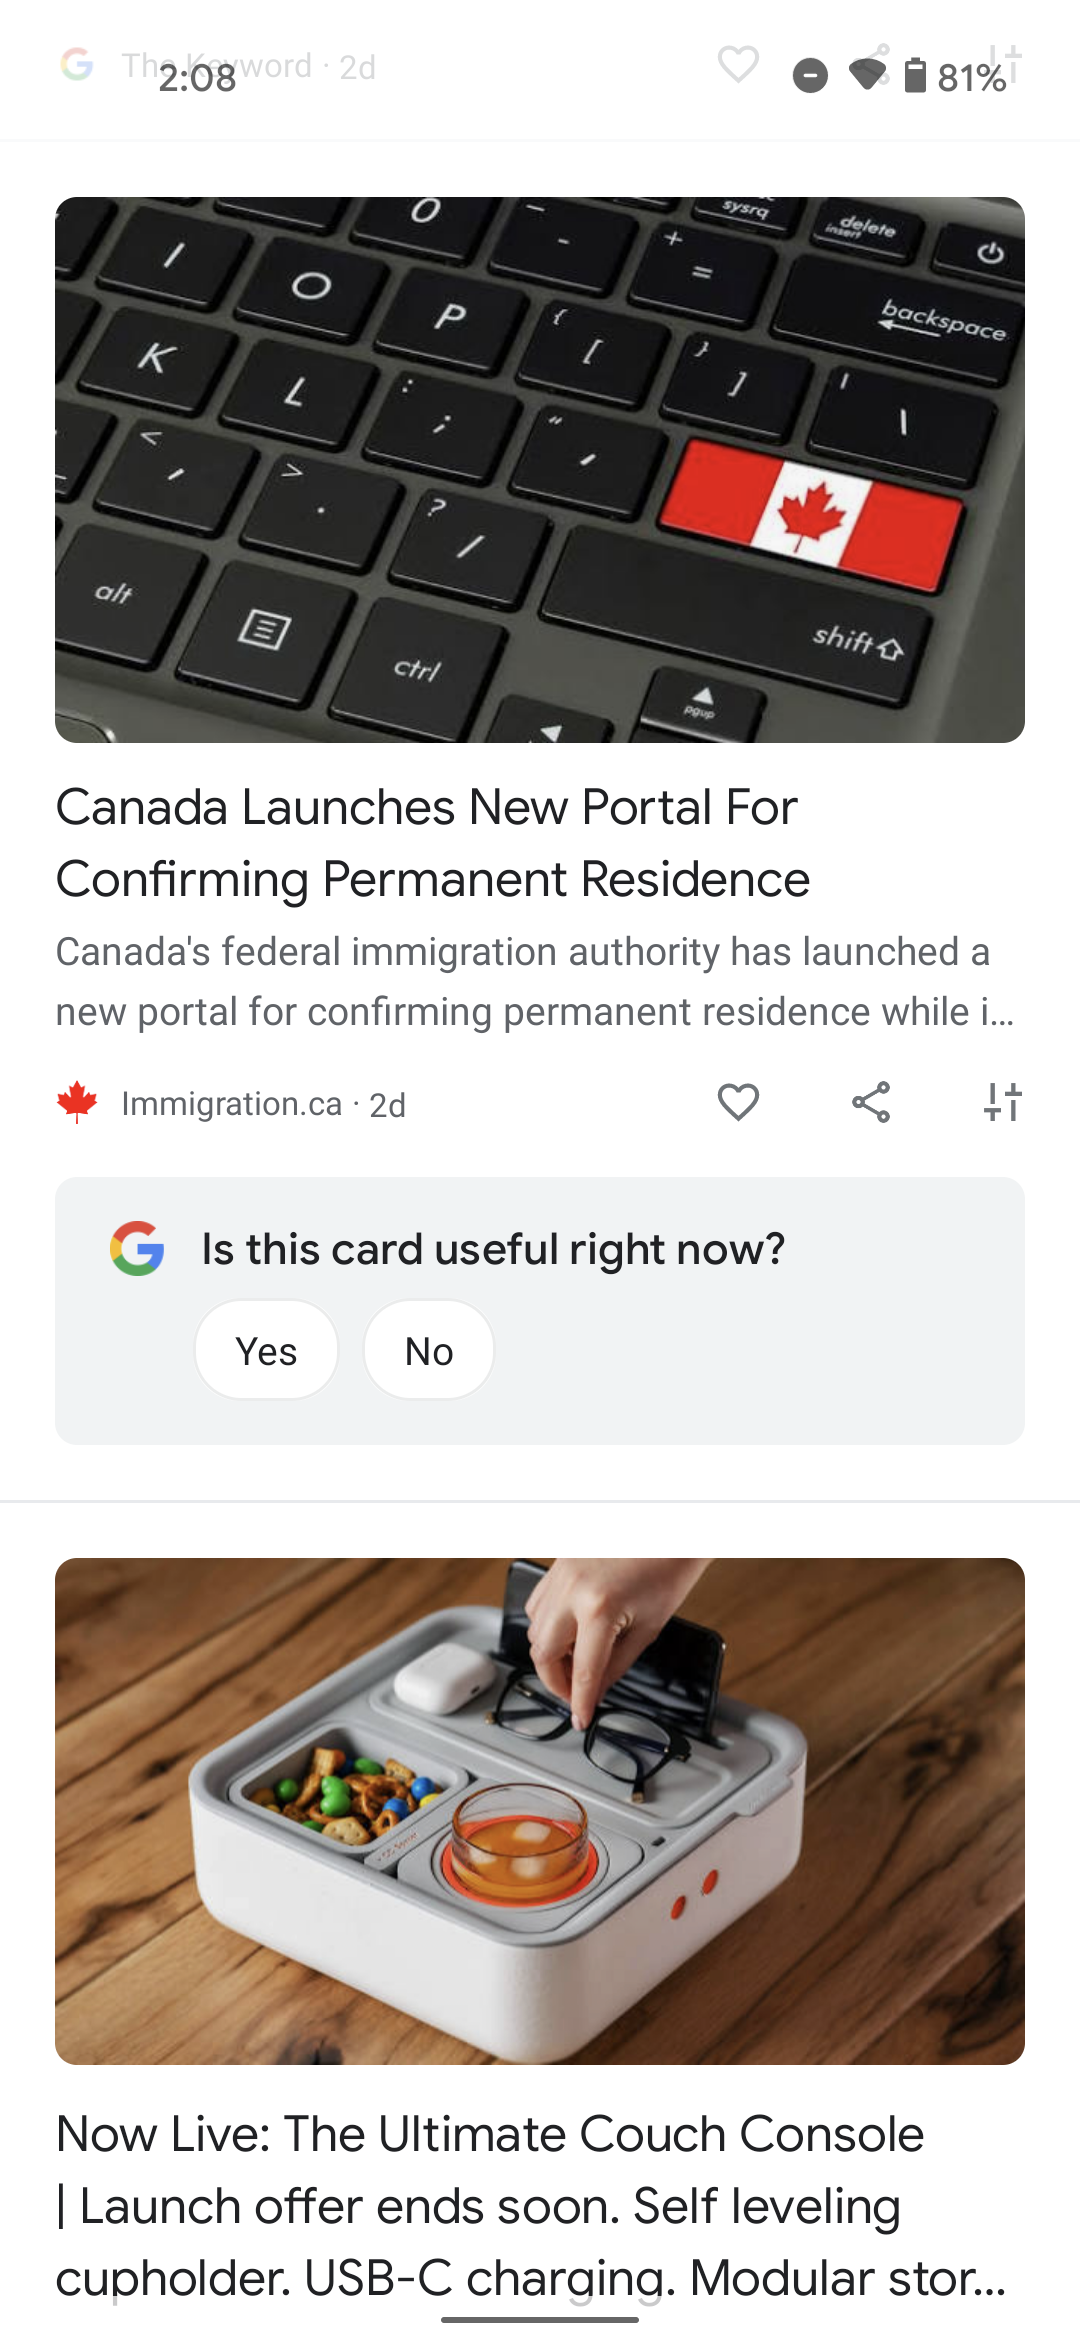 cardless discover feed